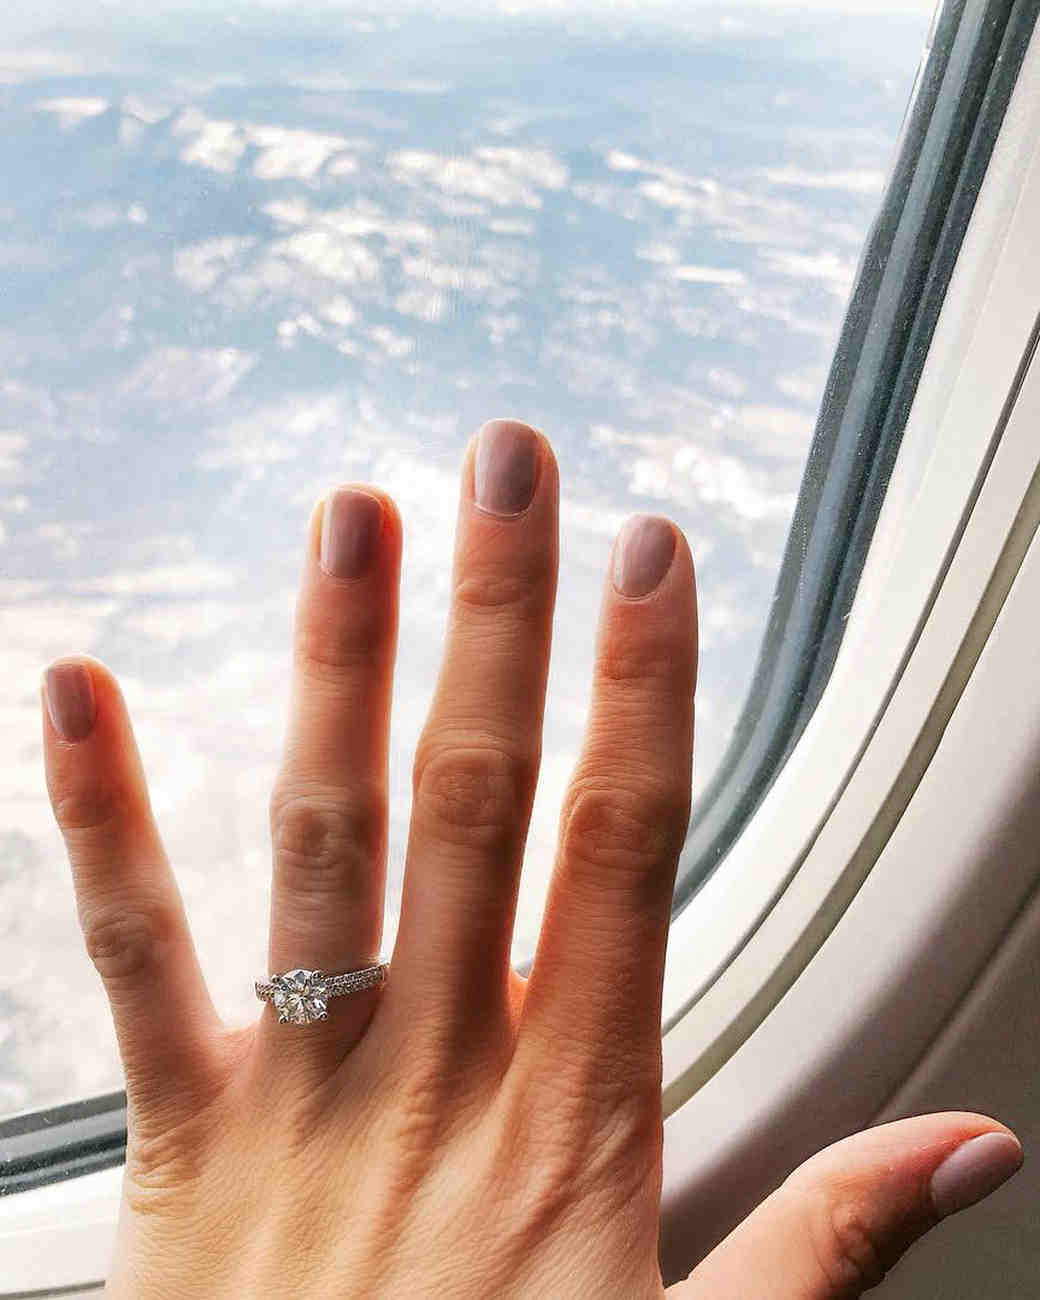 engagement ring selfie airplane window